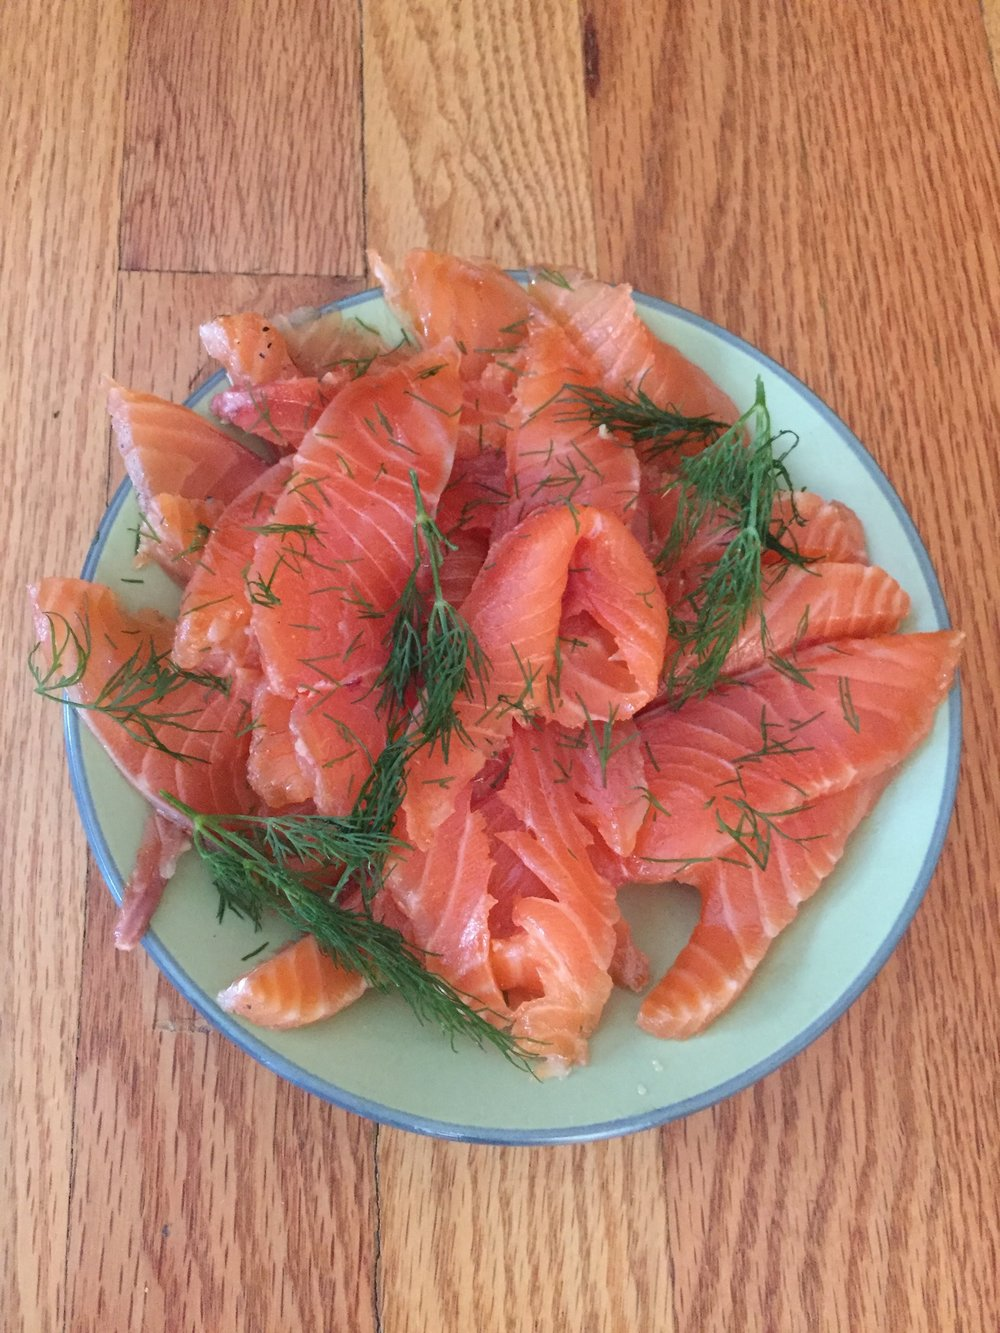 Serve gravlax with fresh dill